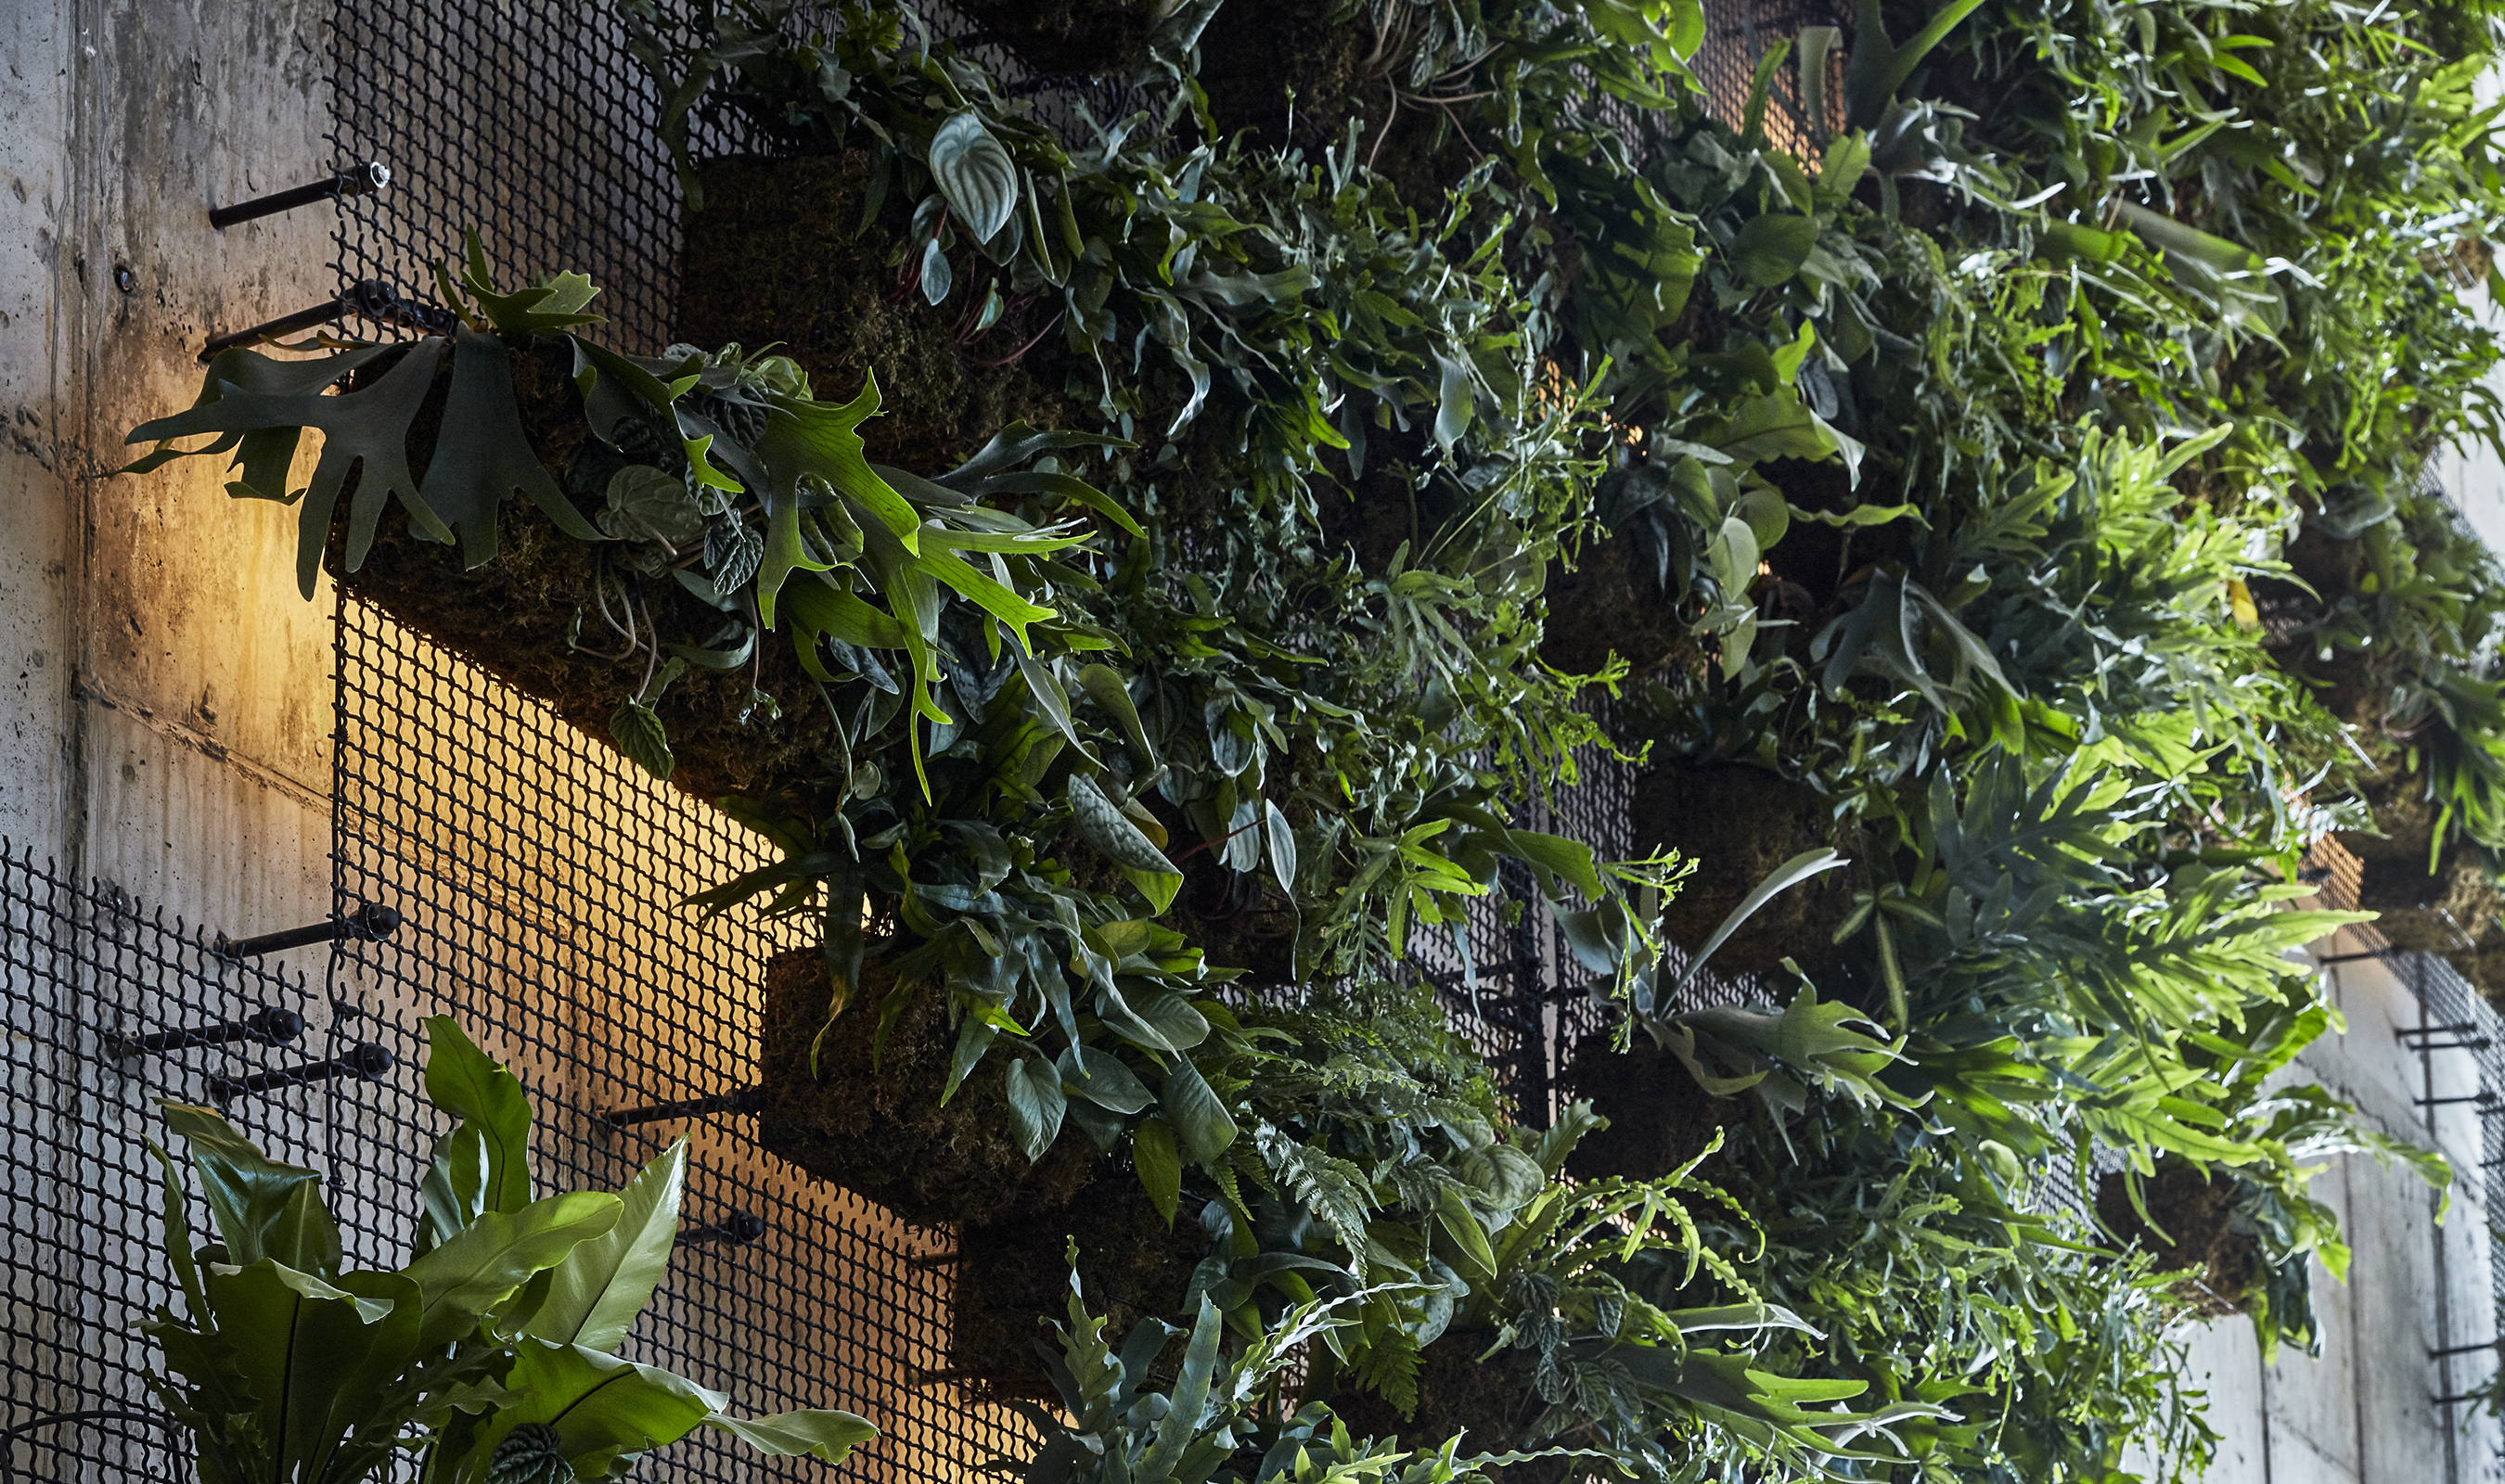 A 25-foot, custom green wall in the lobby made from Banker Wire's wire mesh pattern I-21 to create a woven fixture screen and custom welded wire mesh hanging baskets for vegetation.